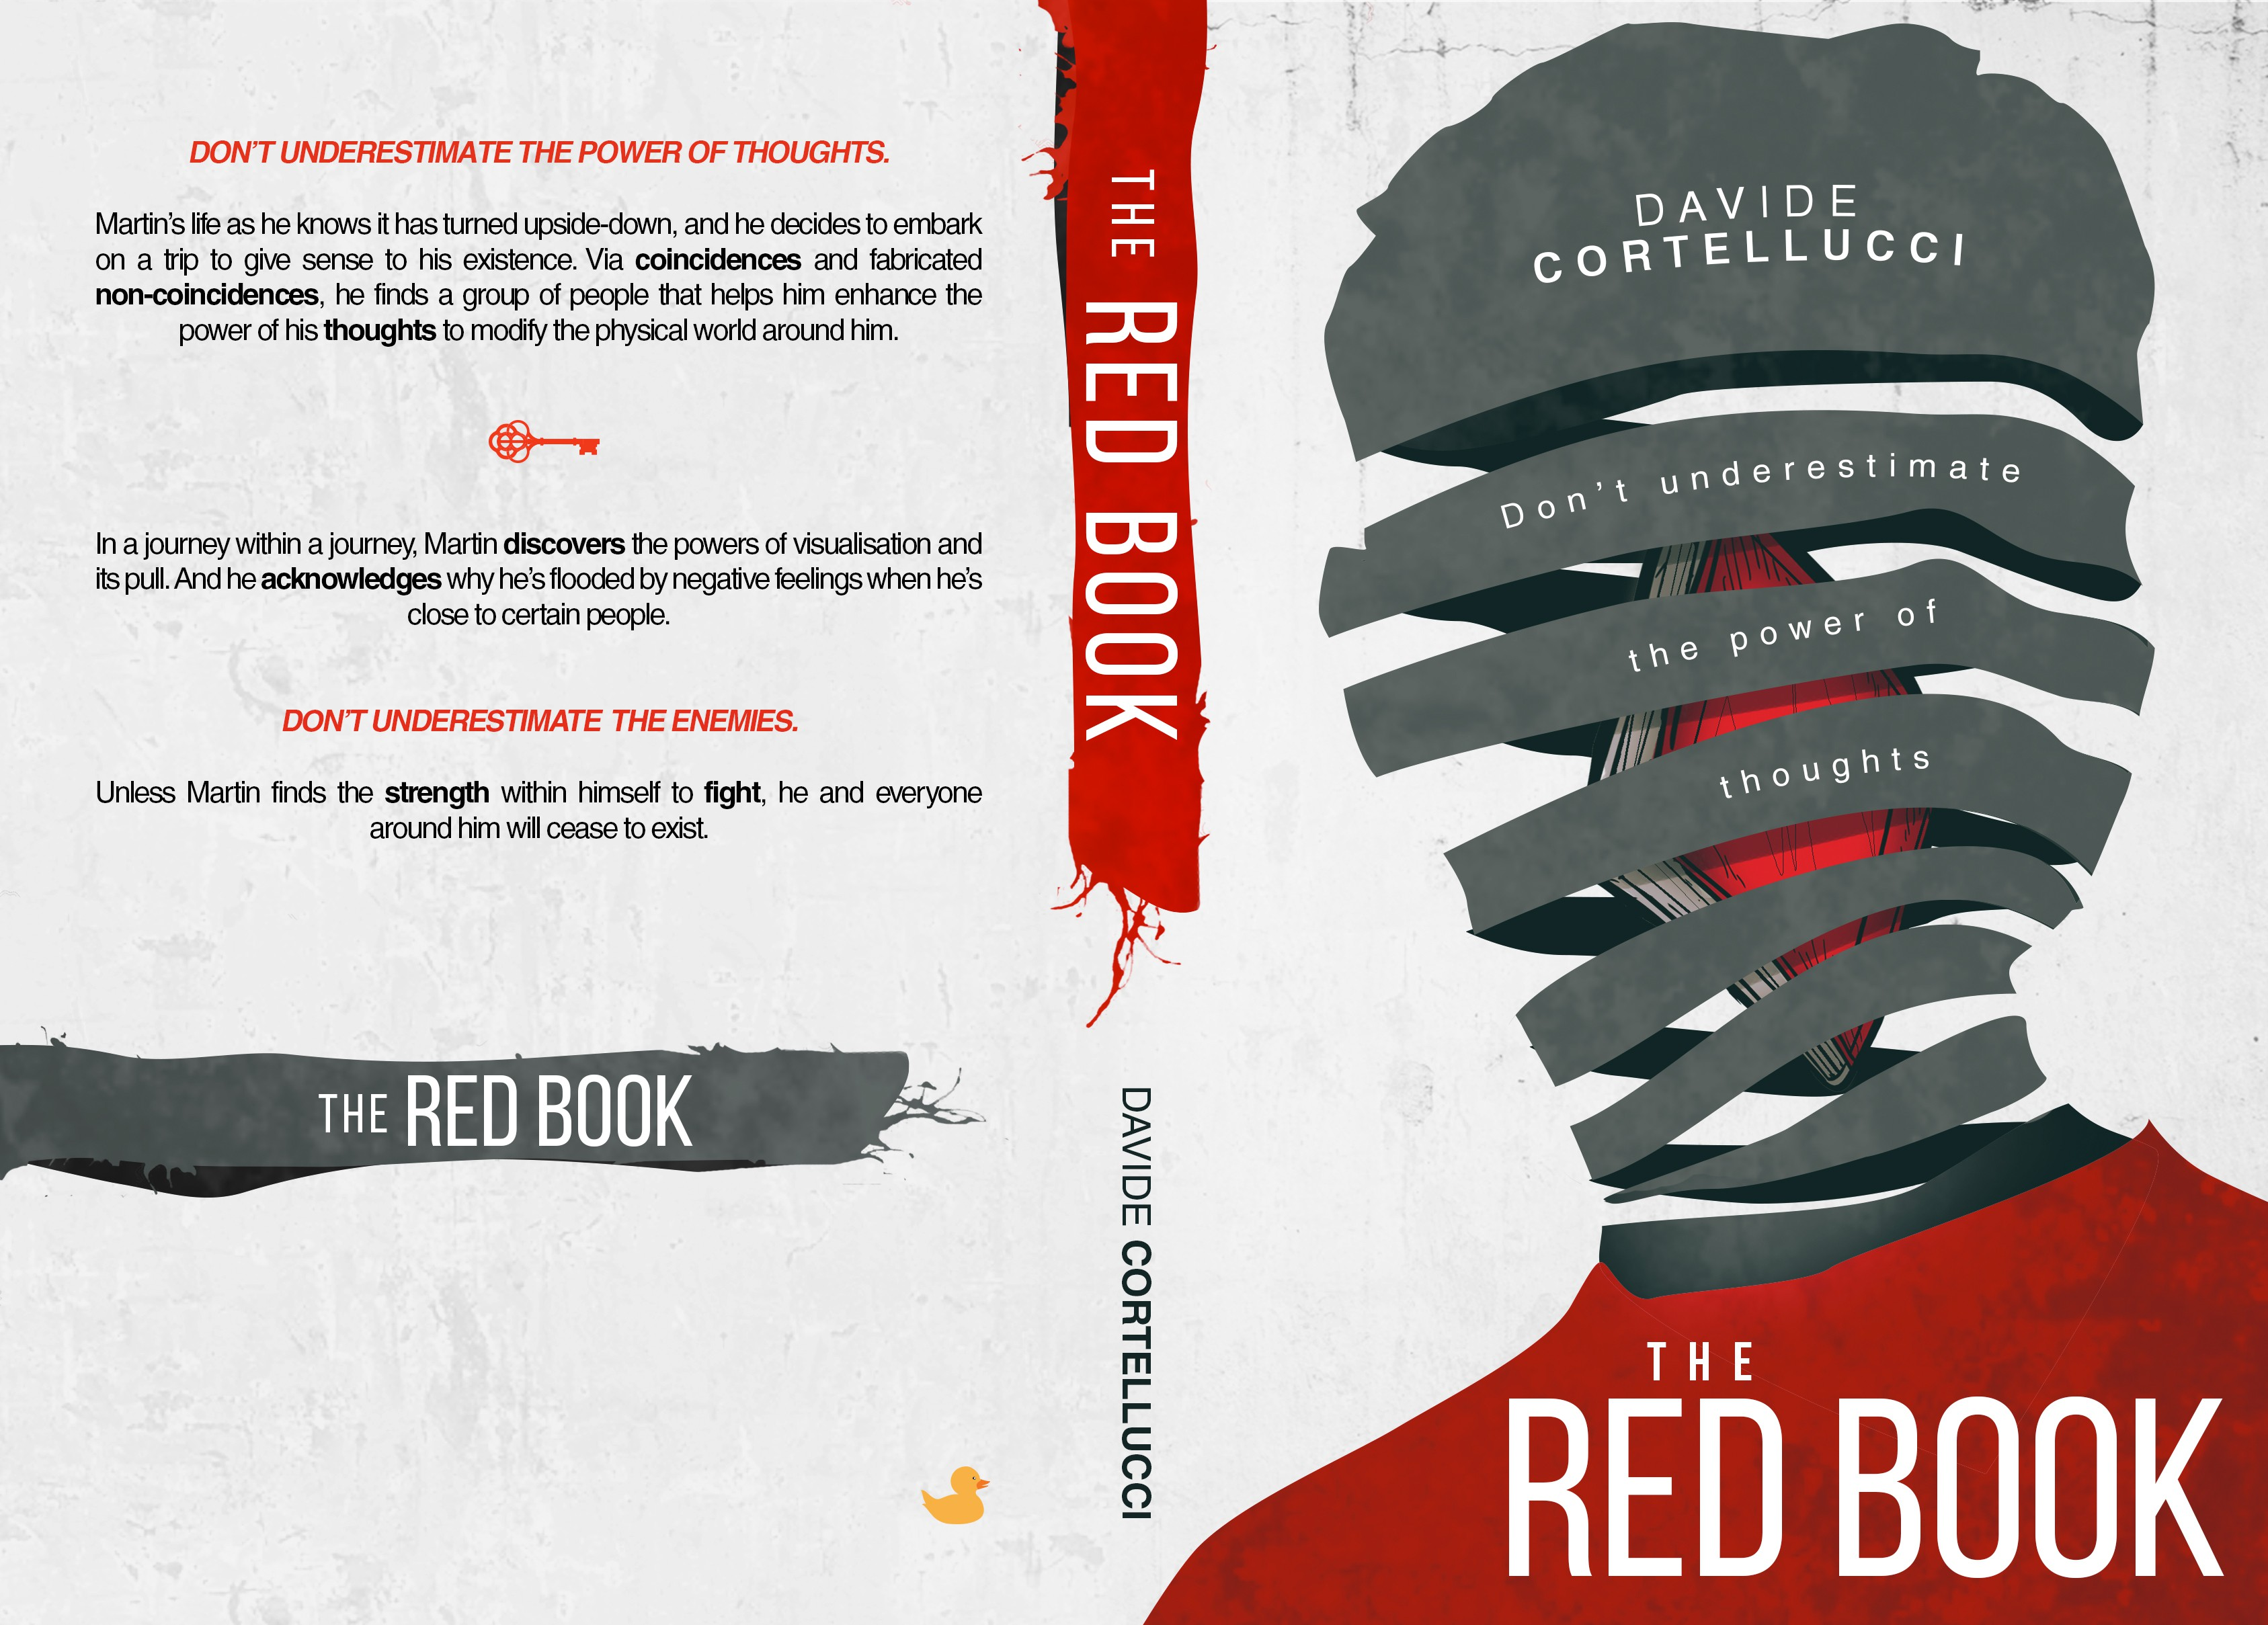 A new novel, THE RED BOOK, needs a great cover that would become an icon through time.